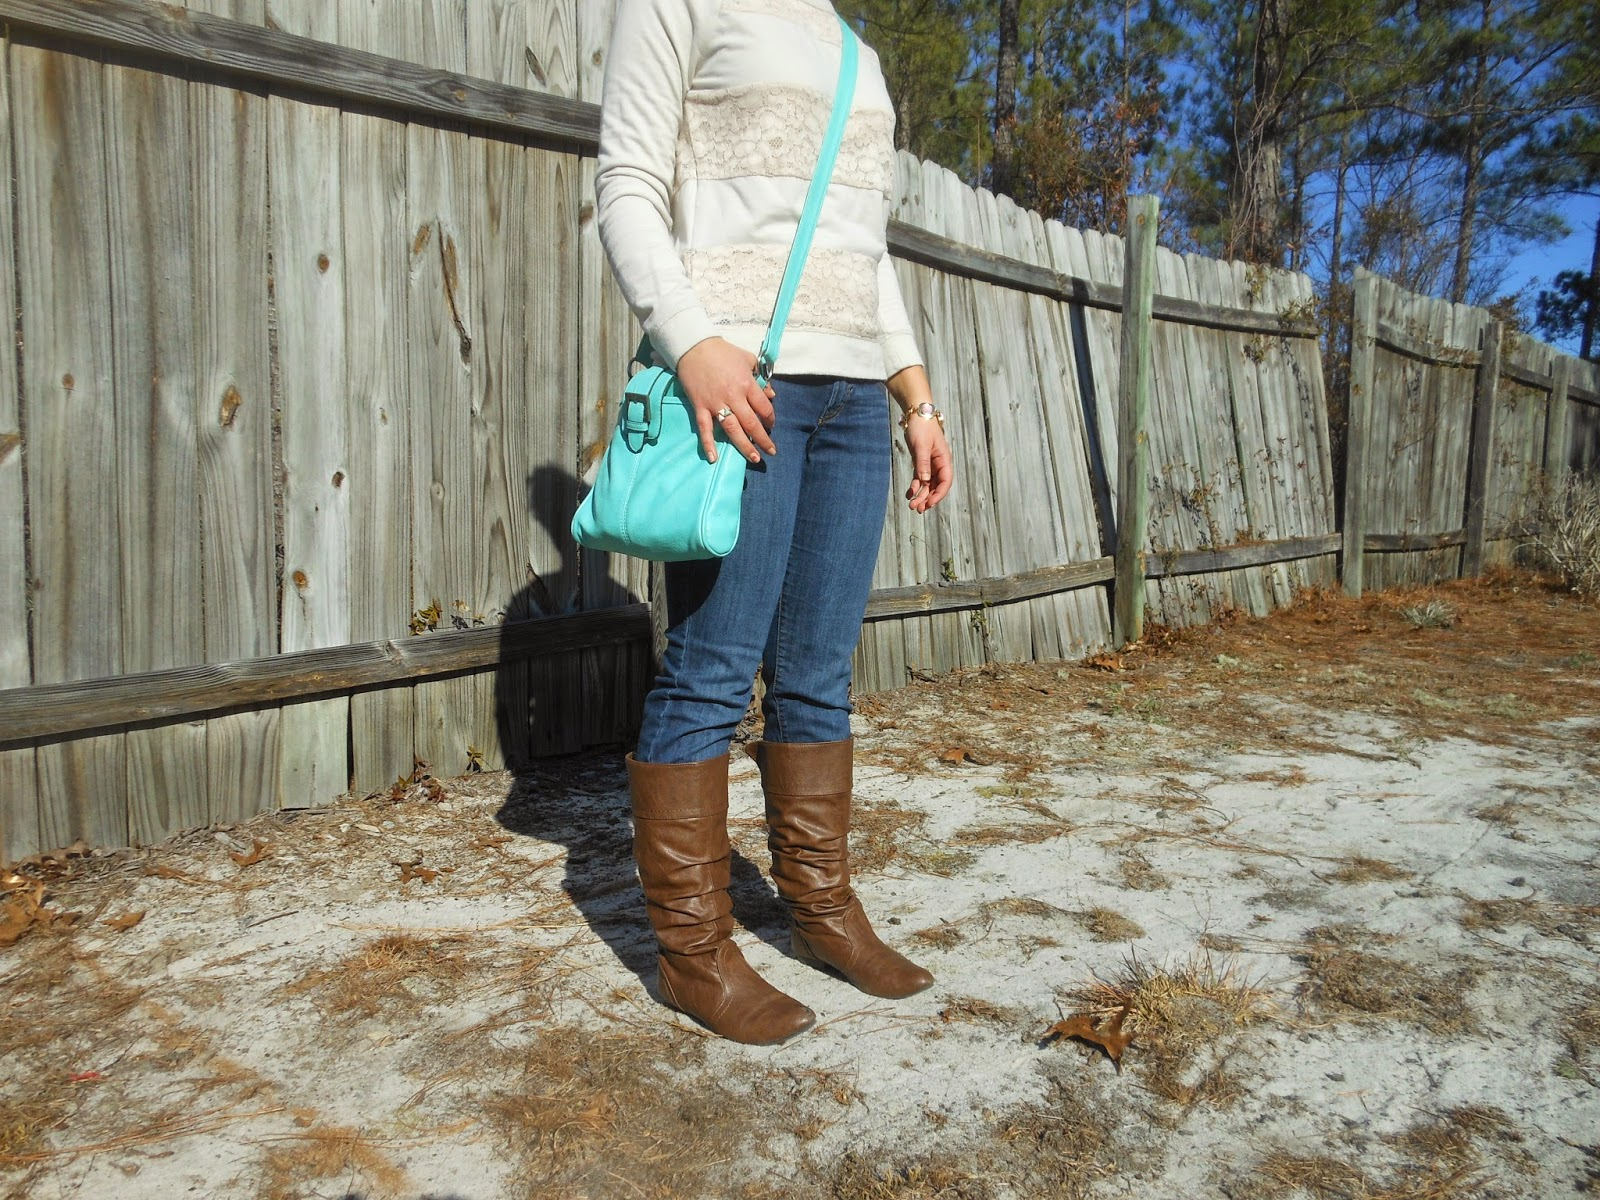 Brights for Winter. Lace sweatshirt, jeans, simple bright jewelry, bright blue purse, riding boots.